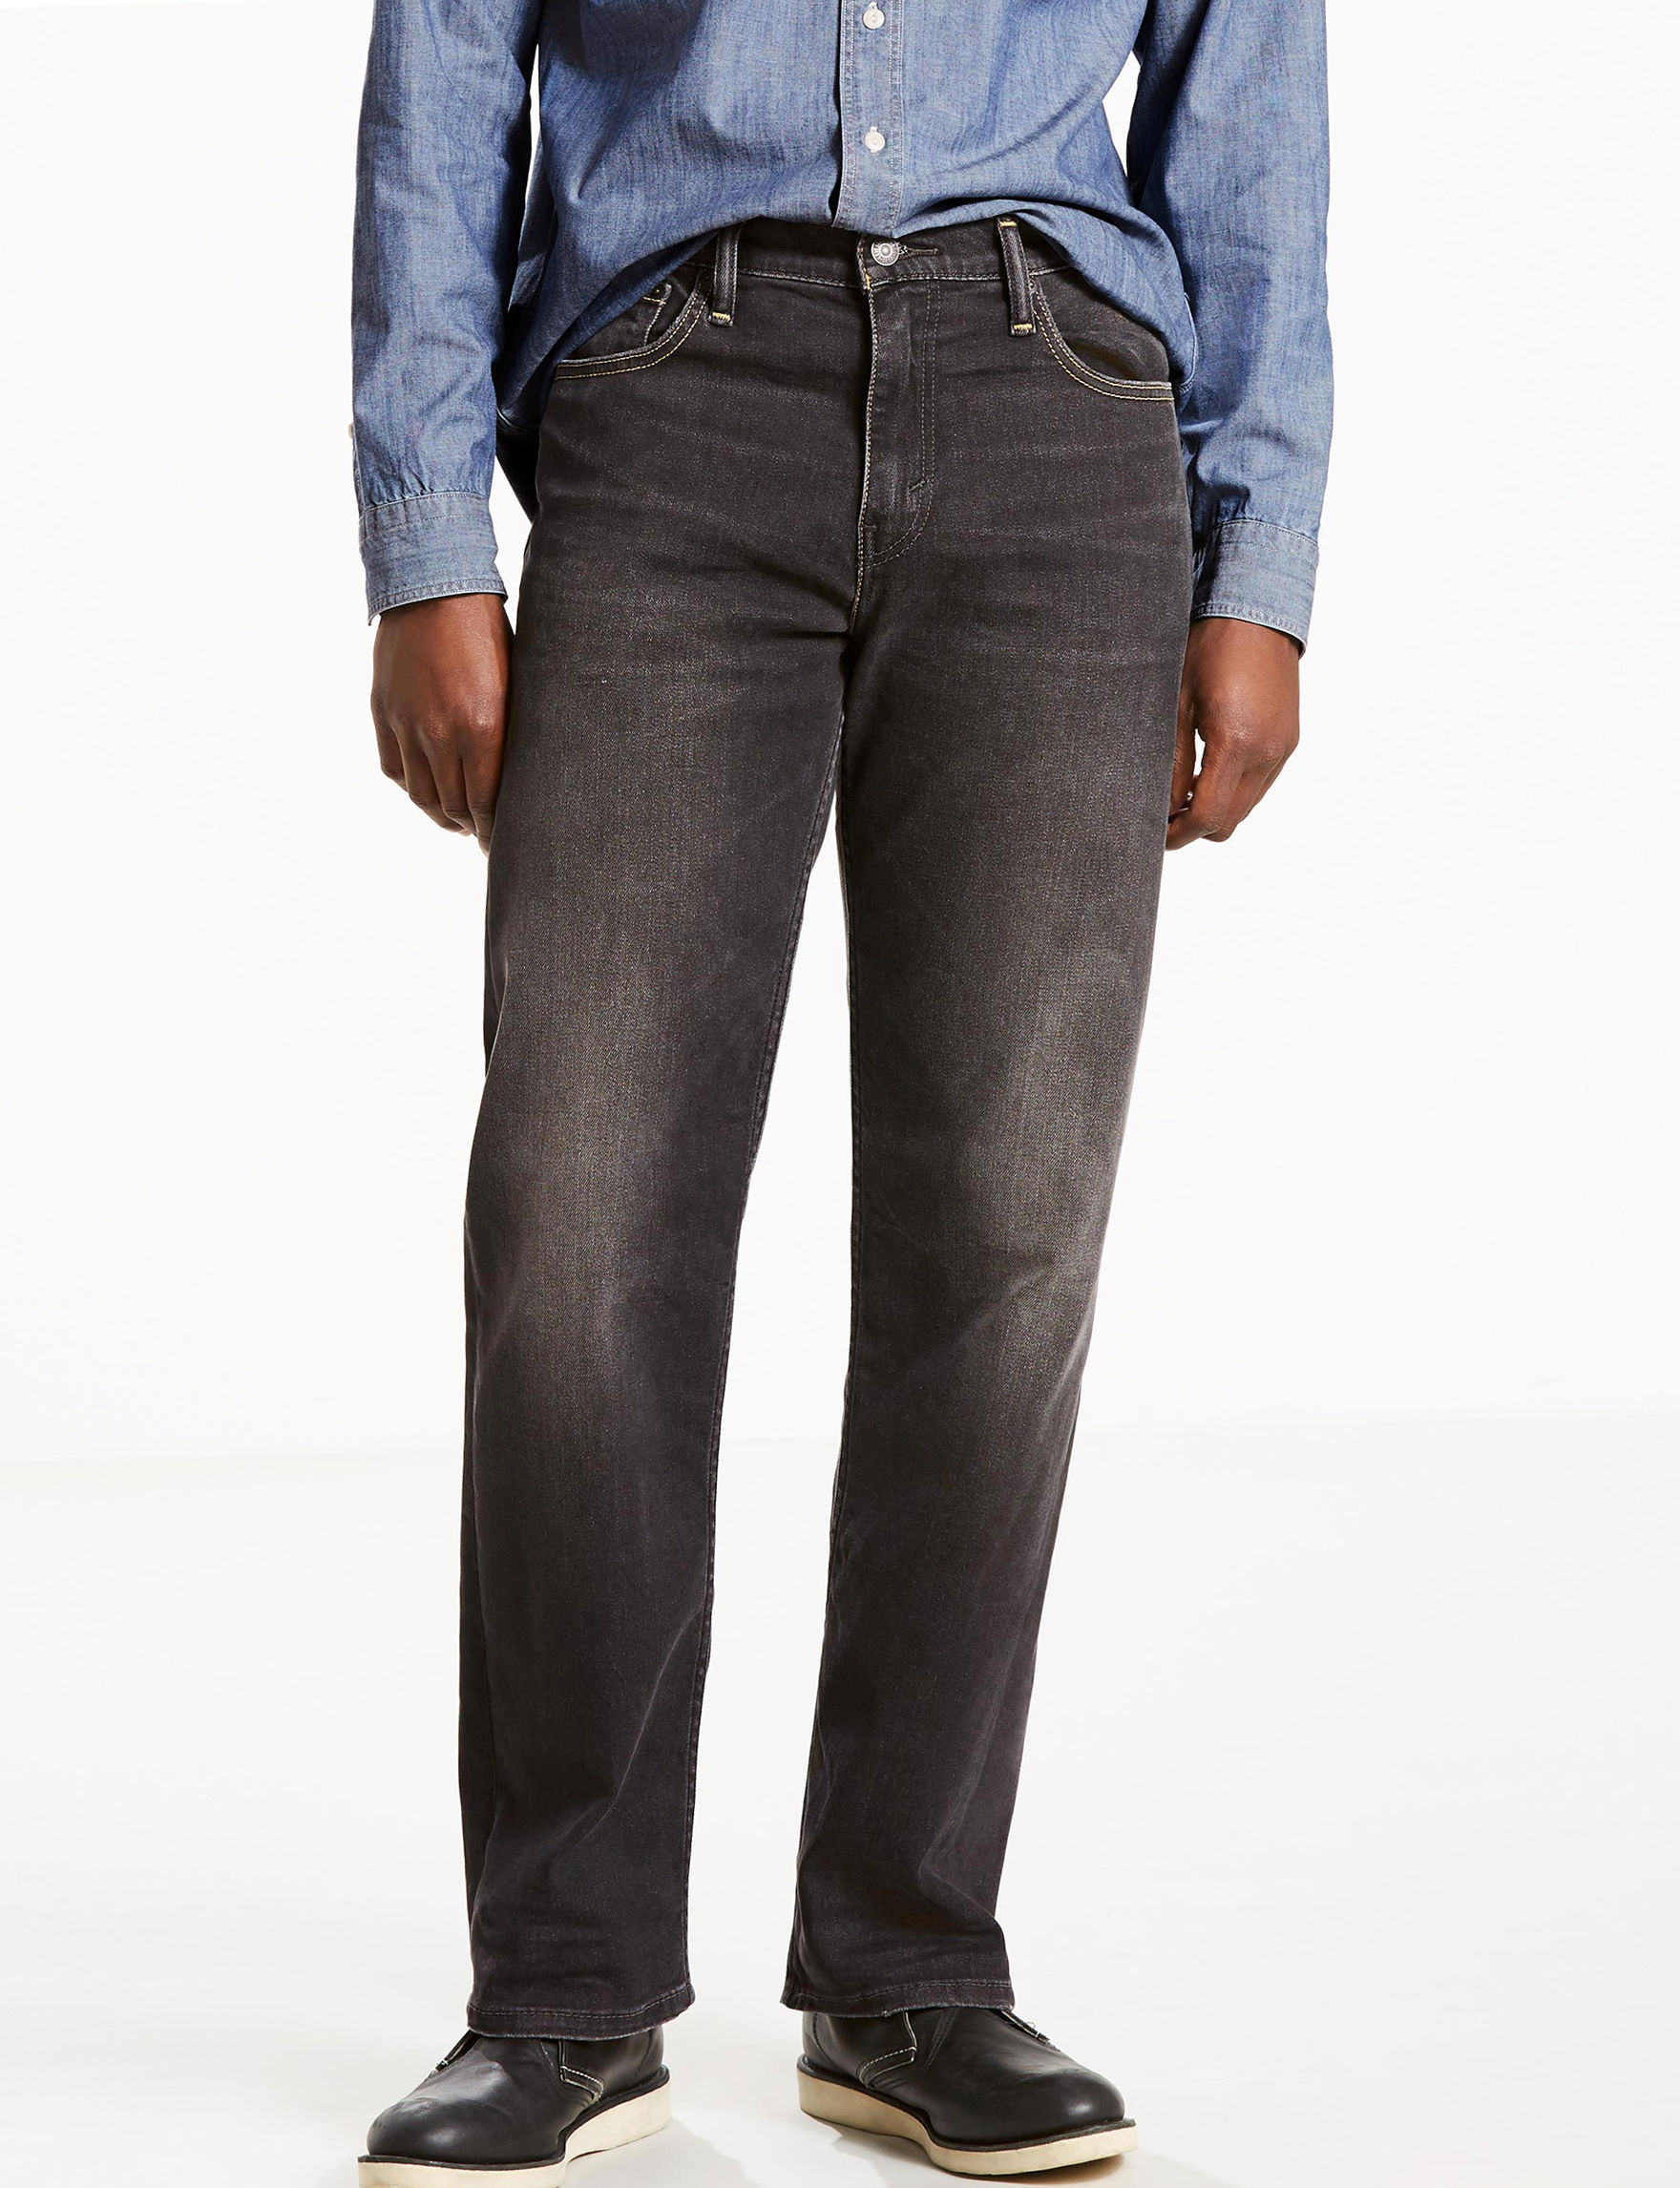 Levi's Black Loose Relaxed Relaxed Straight